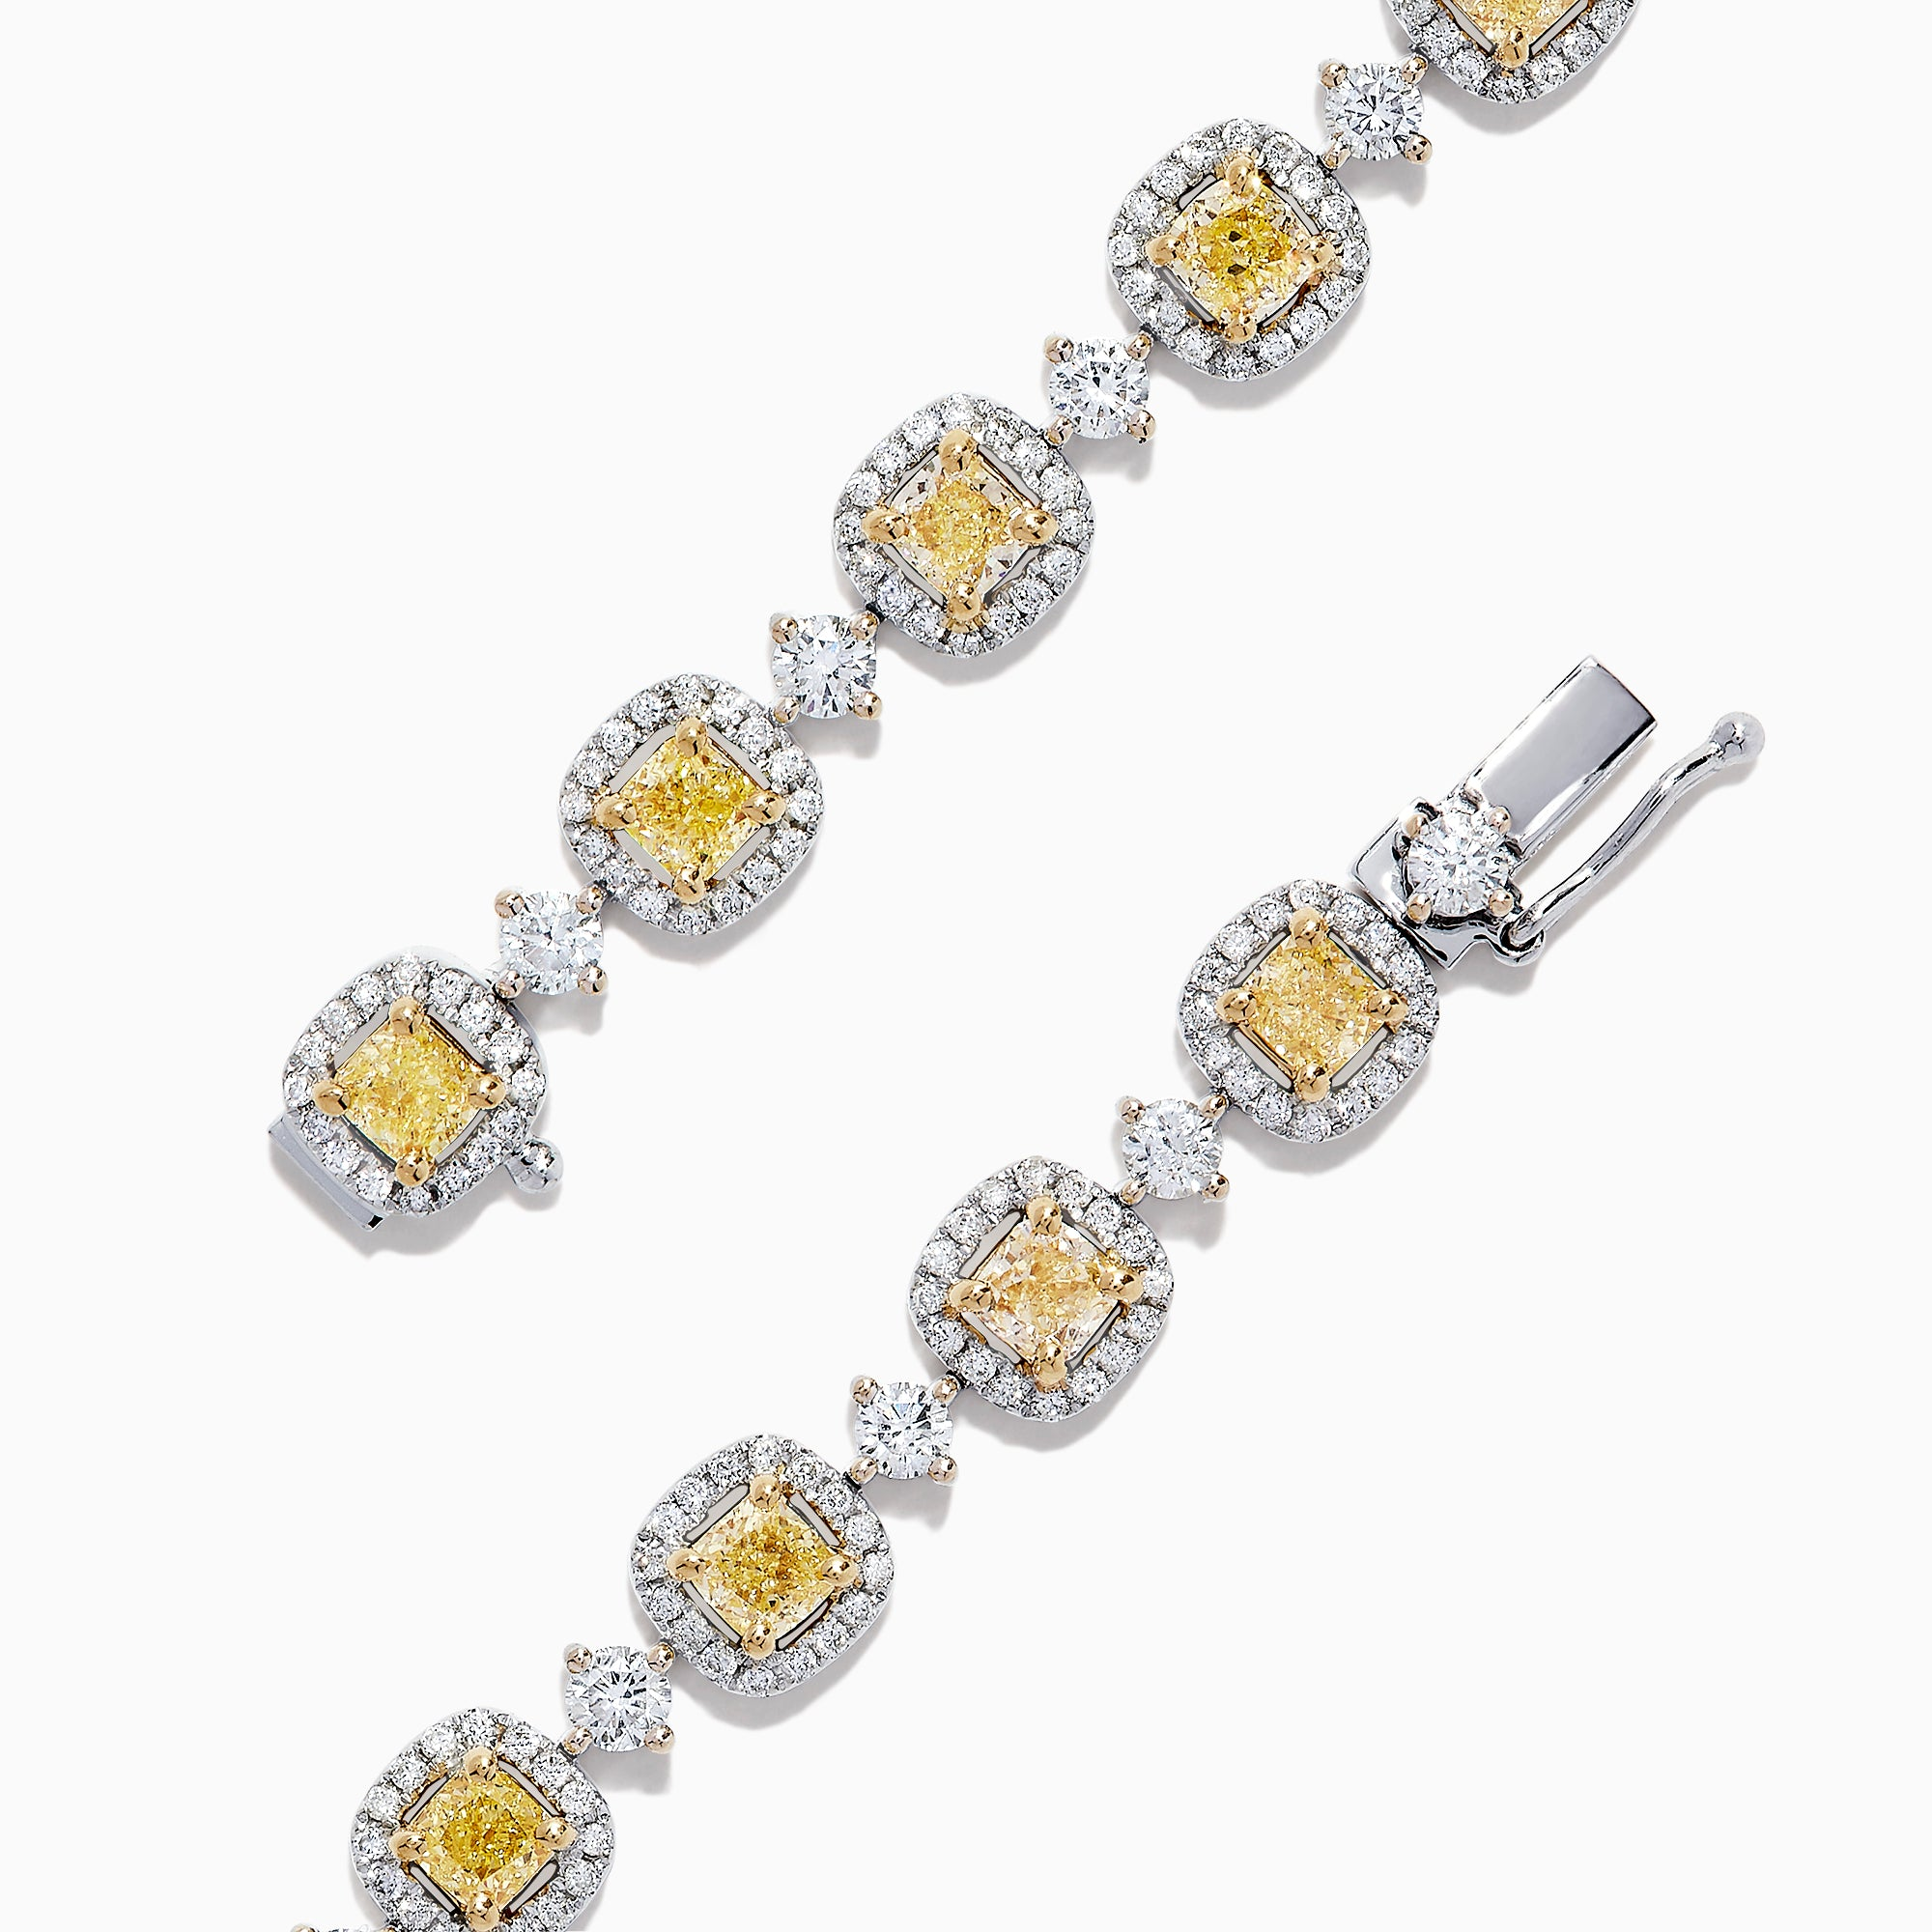 Effy Canare 18K Gold Yellow & White Diamond Tennis Bracelet, 4.71 TCW